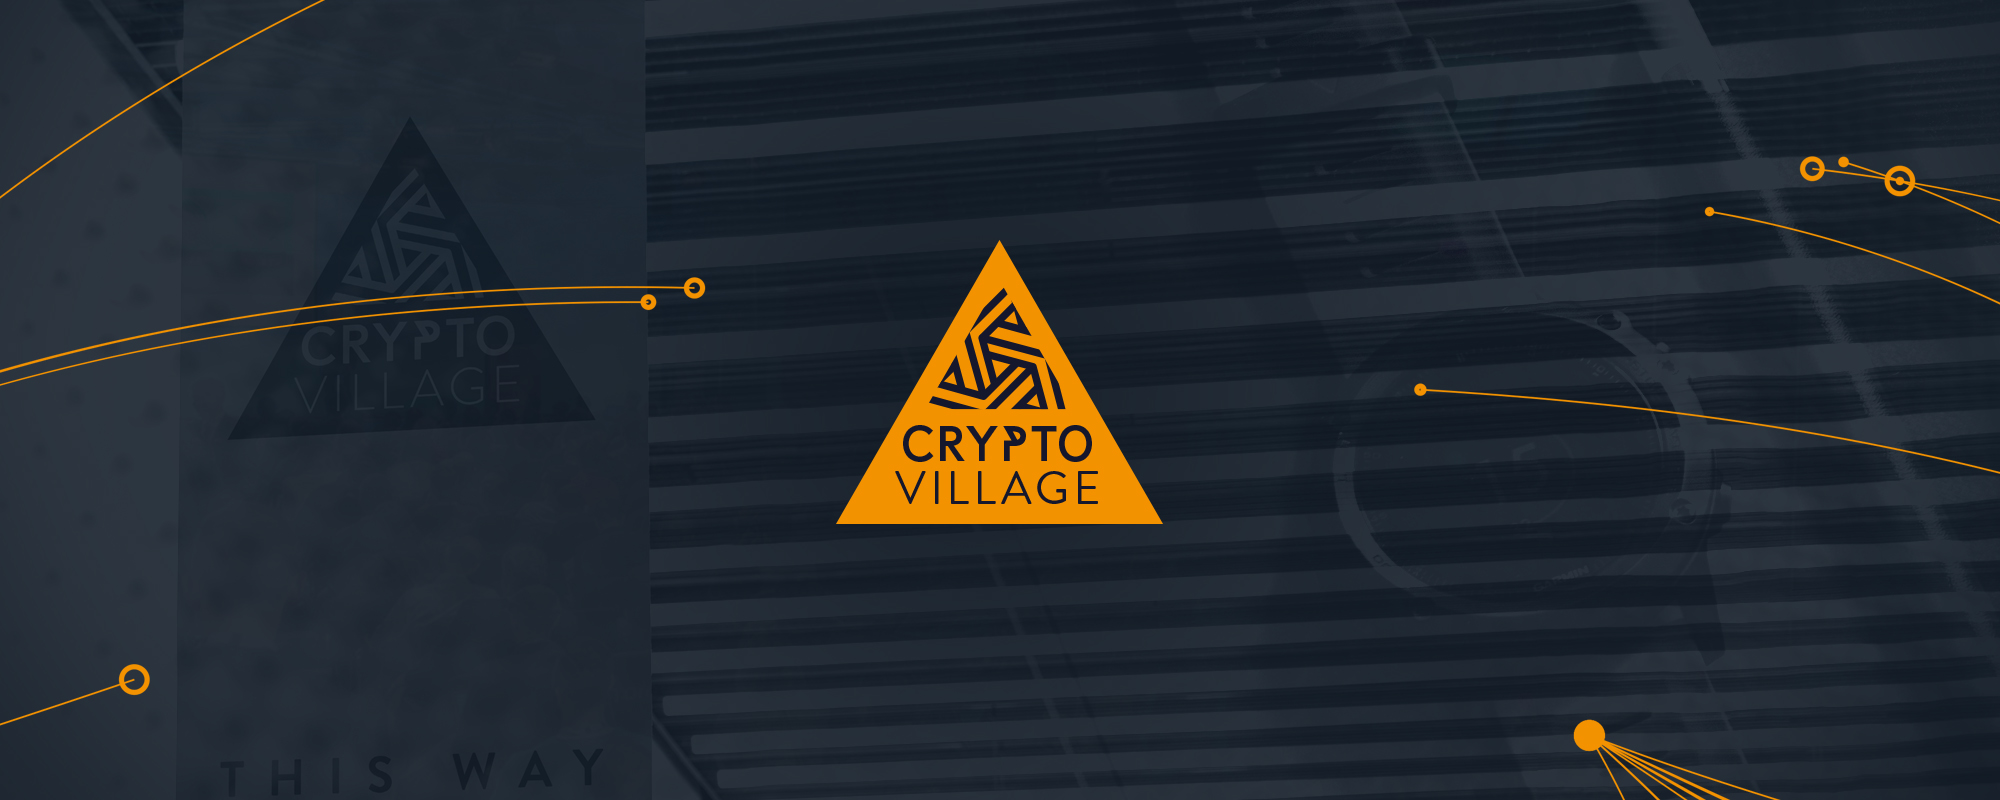 The Crypto Village